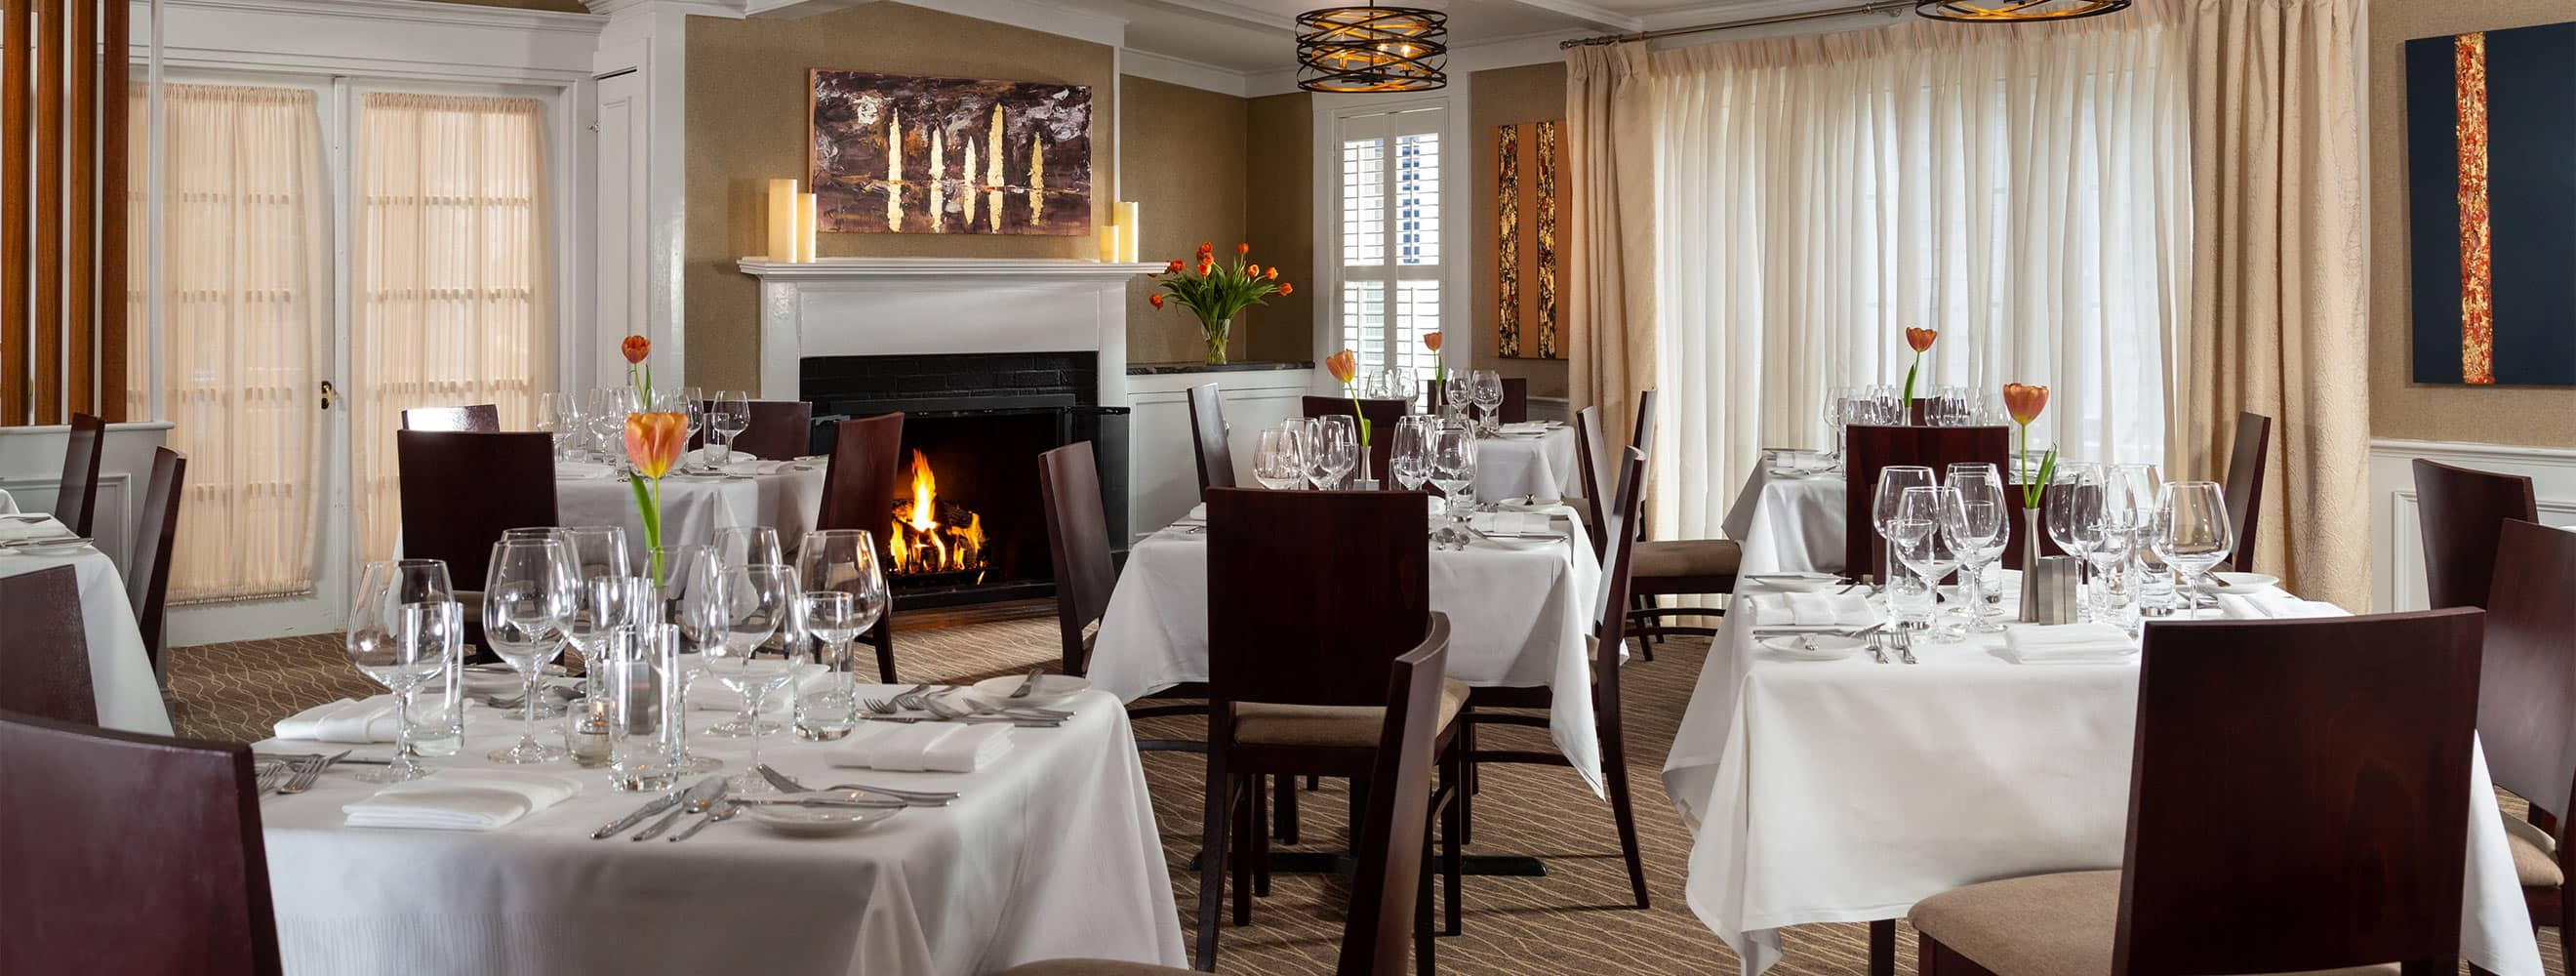 Top Rated Chatham Restaurant An Intimate Fine Dining